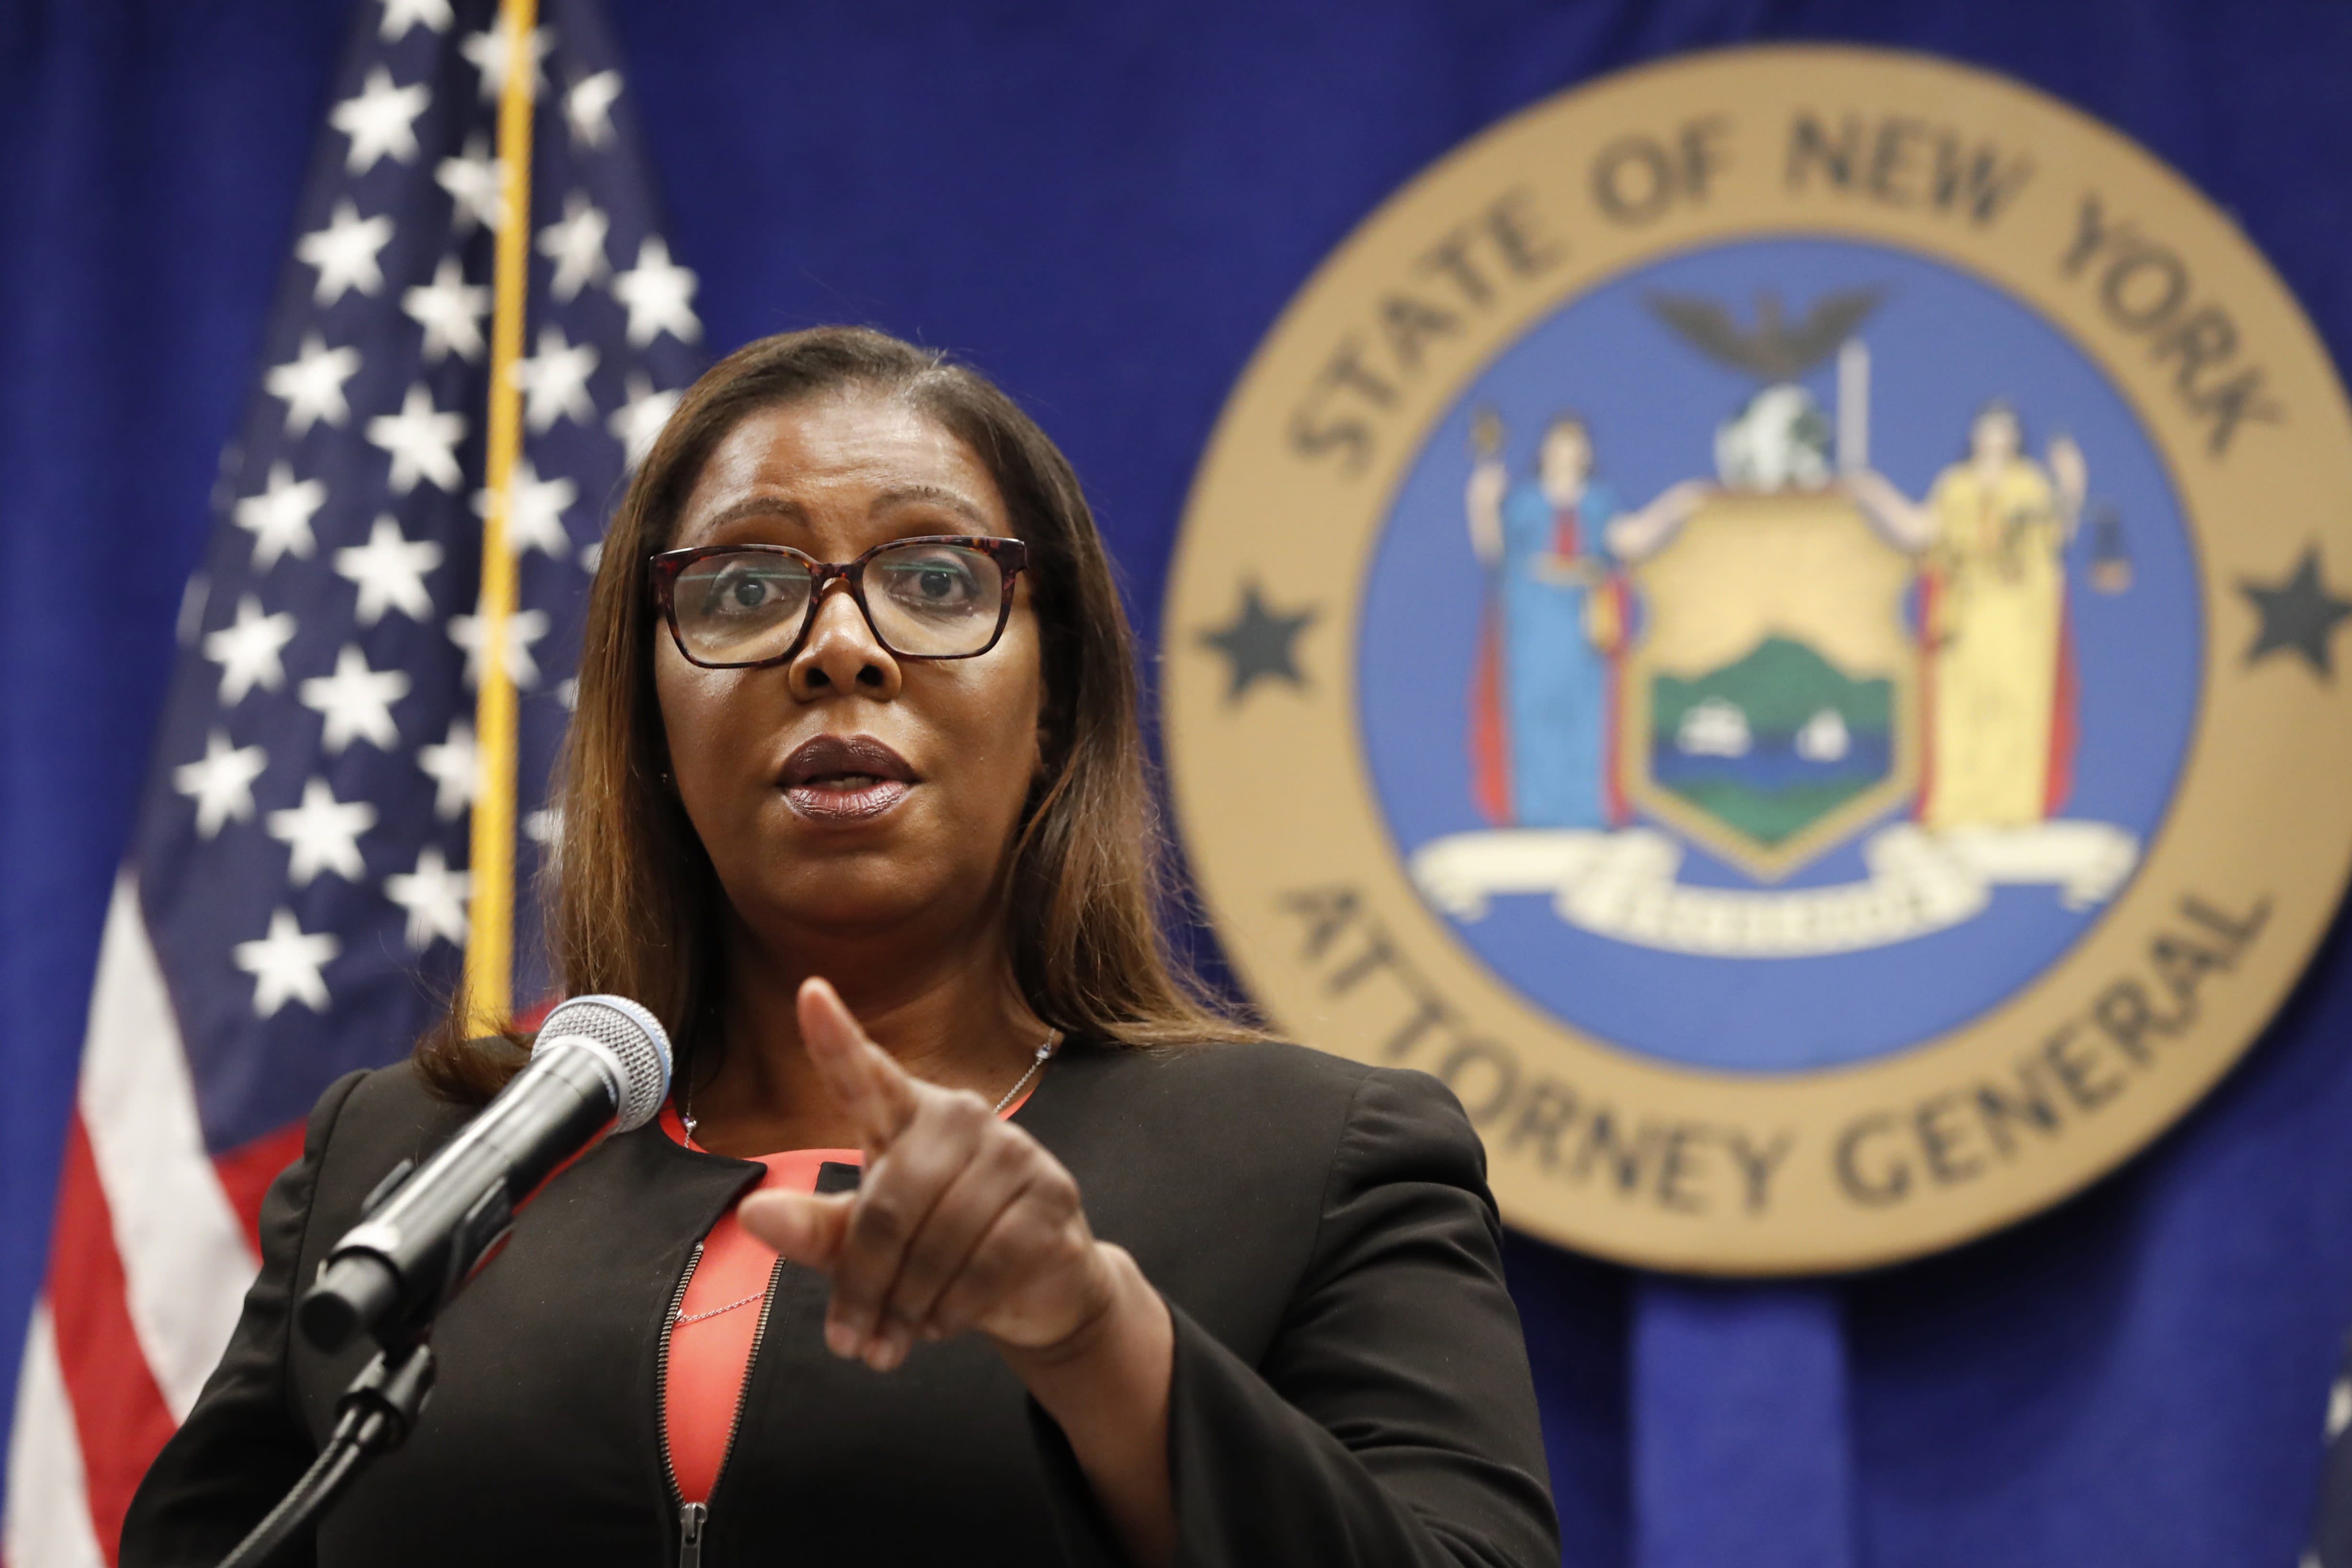 FILE- In this Aug. 6, 2020 file photo, New York State Attorney General Letitia James takes a question at a news conference in New York. James said on Saturday, Sept. 5, 2020 that she will impanel a grand jury to look into the death of Daniel Prude. Prude, 41, apparently stopped breathing as police in Rochester, N.Y. were restraining him in March 2020 and died when he was taken off life support a week later. (AP Photo/Kathy Willens, File)